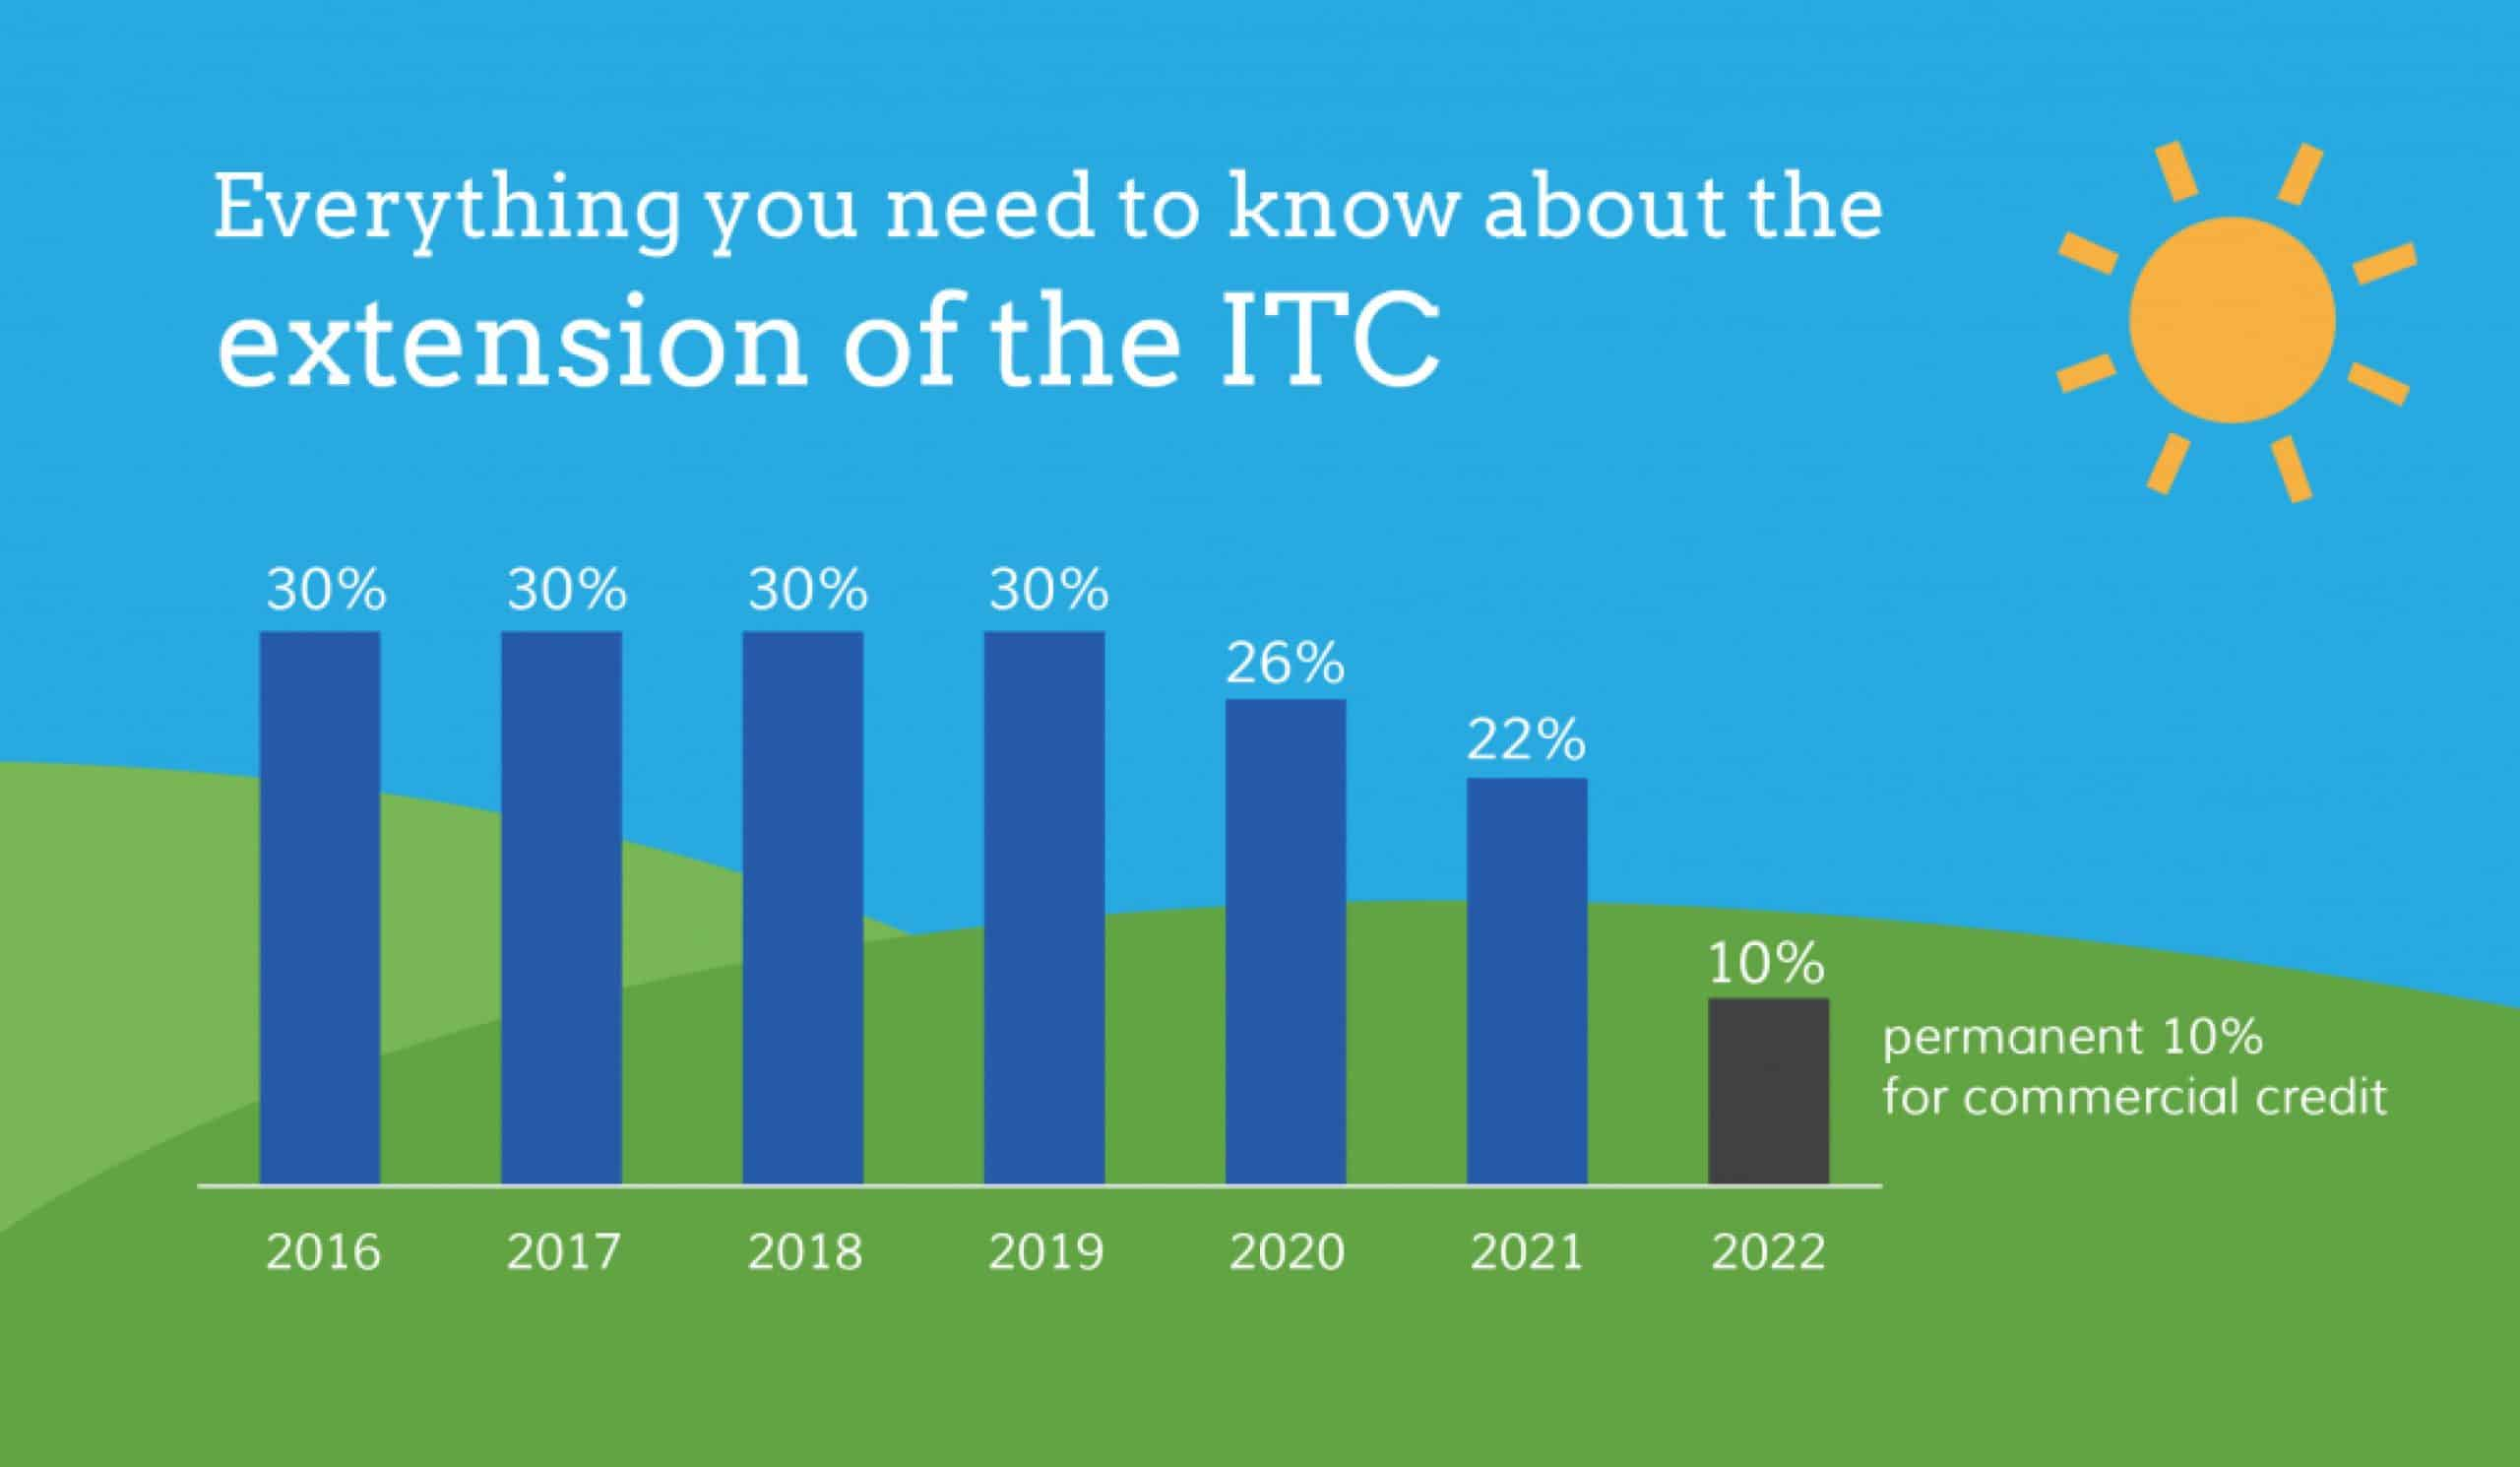 Extension of the ITC Chart by Sunline Energy